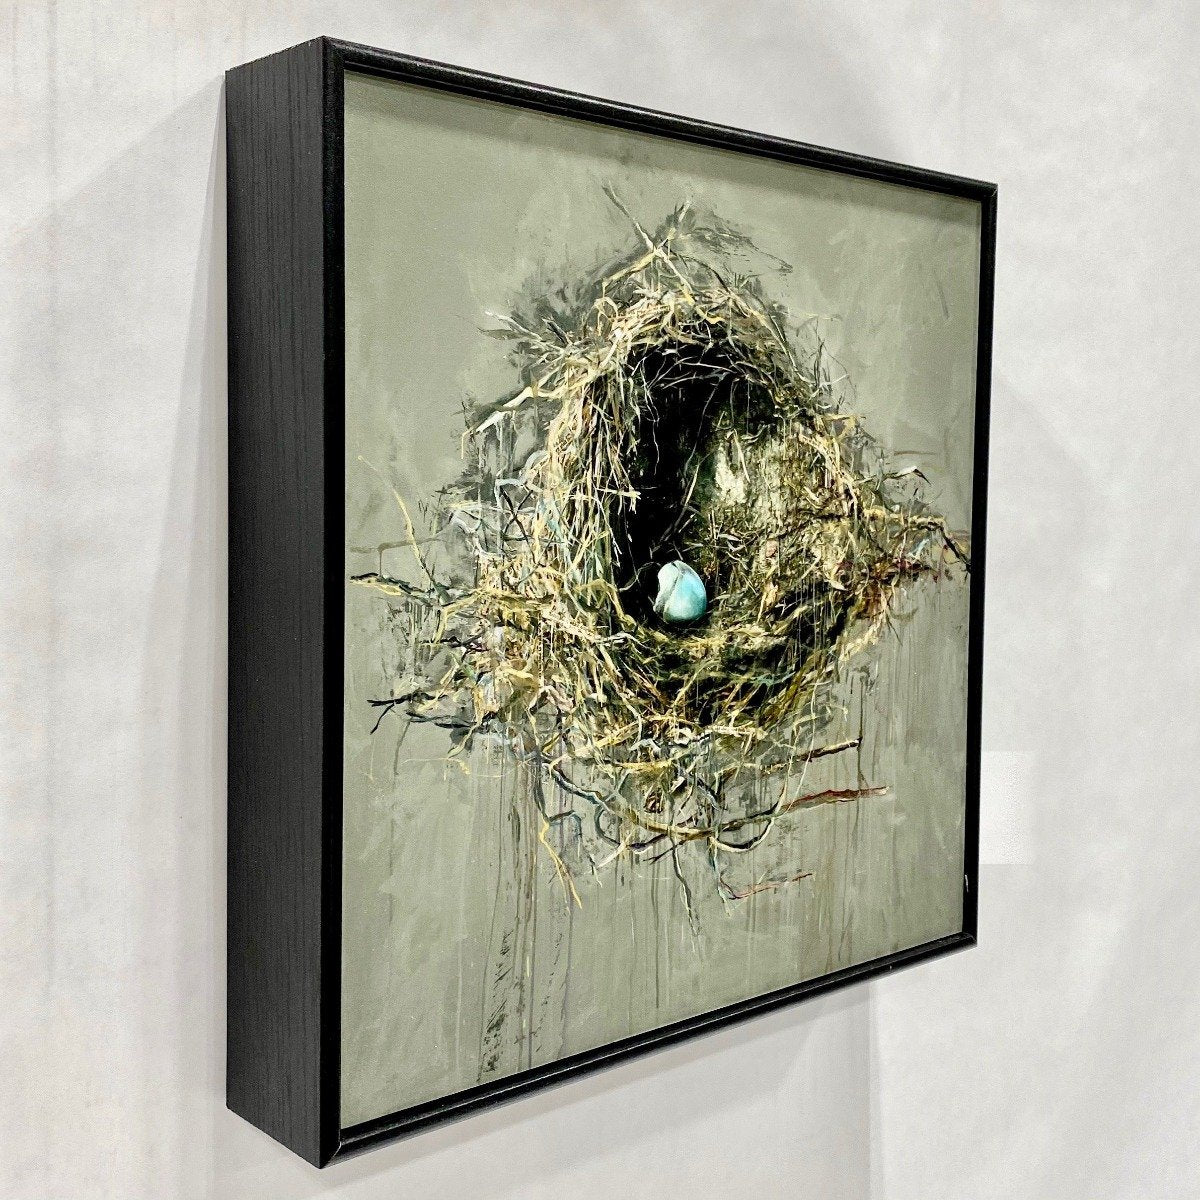 Framed Giclee Art Blocks Small and Large